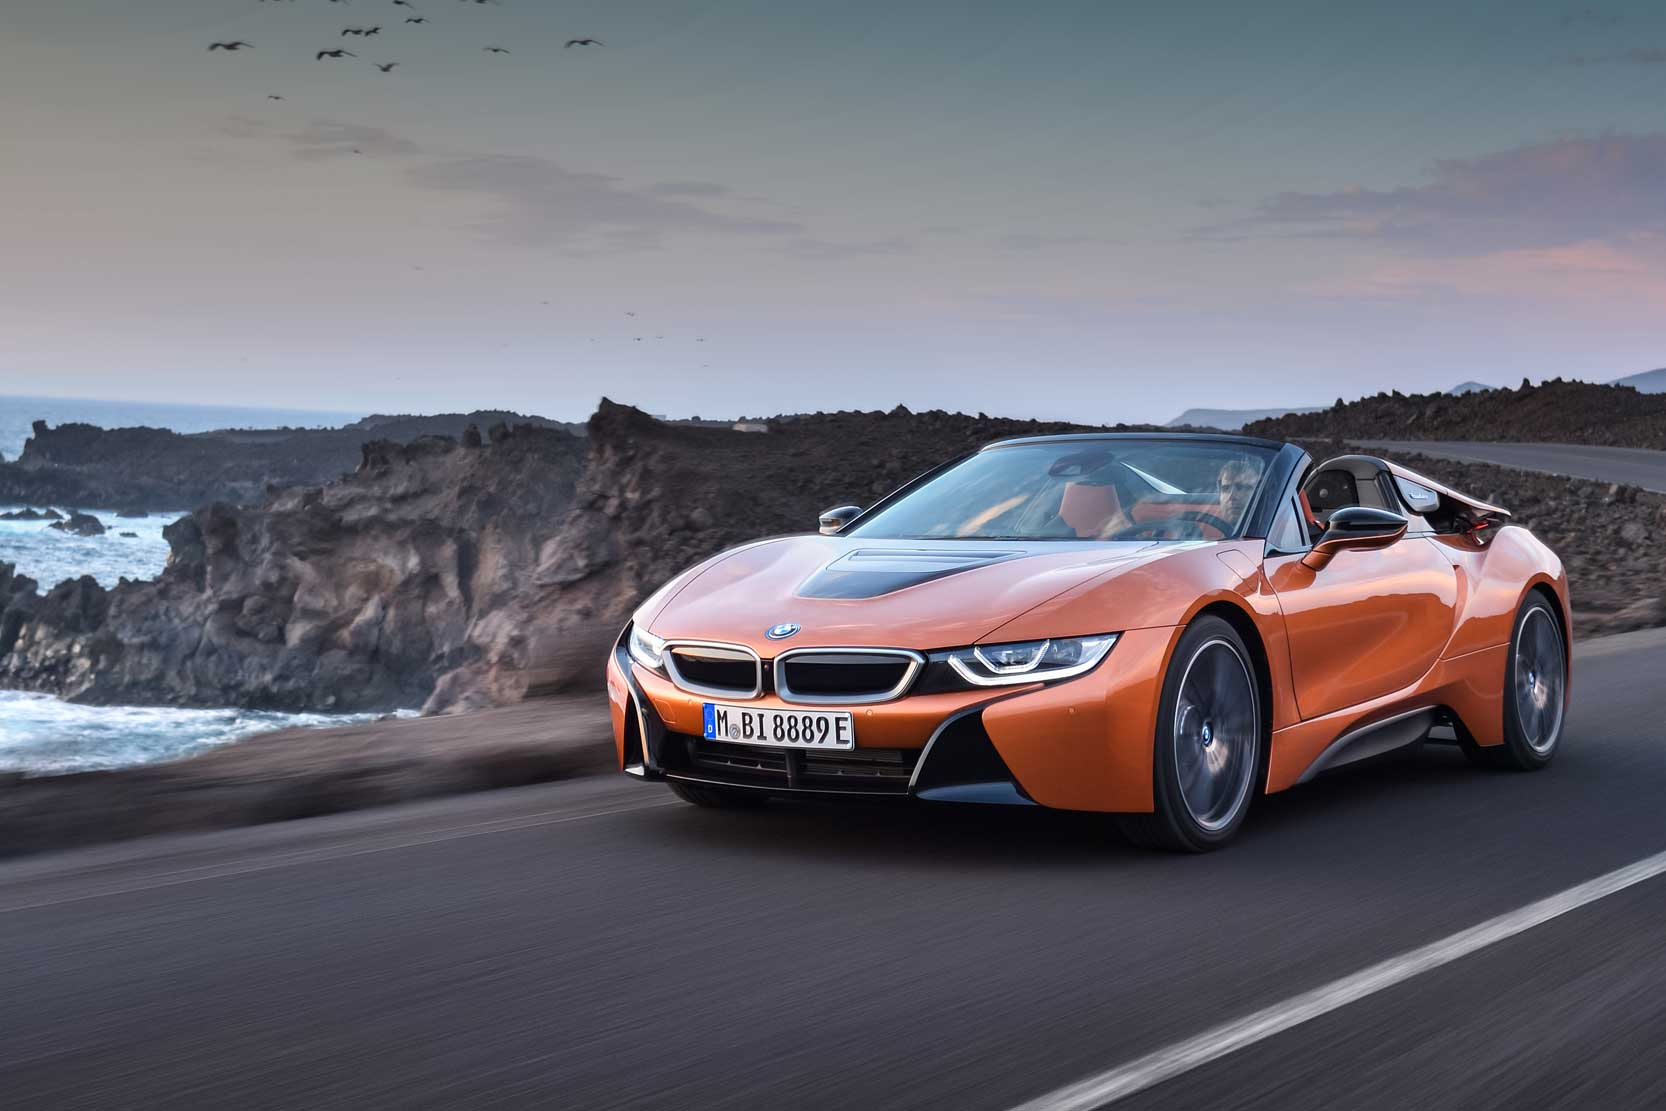 Exterieur_Bmw-i8-Roadster_1